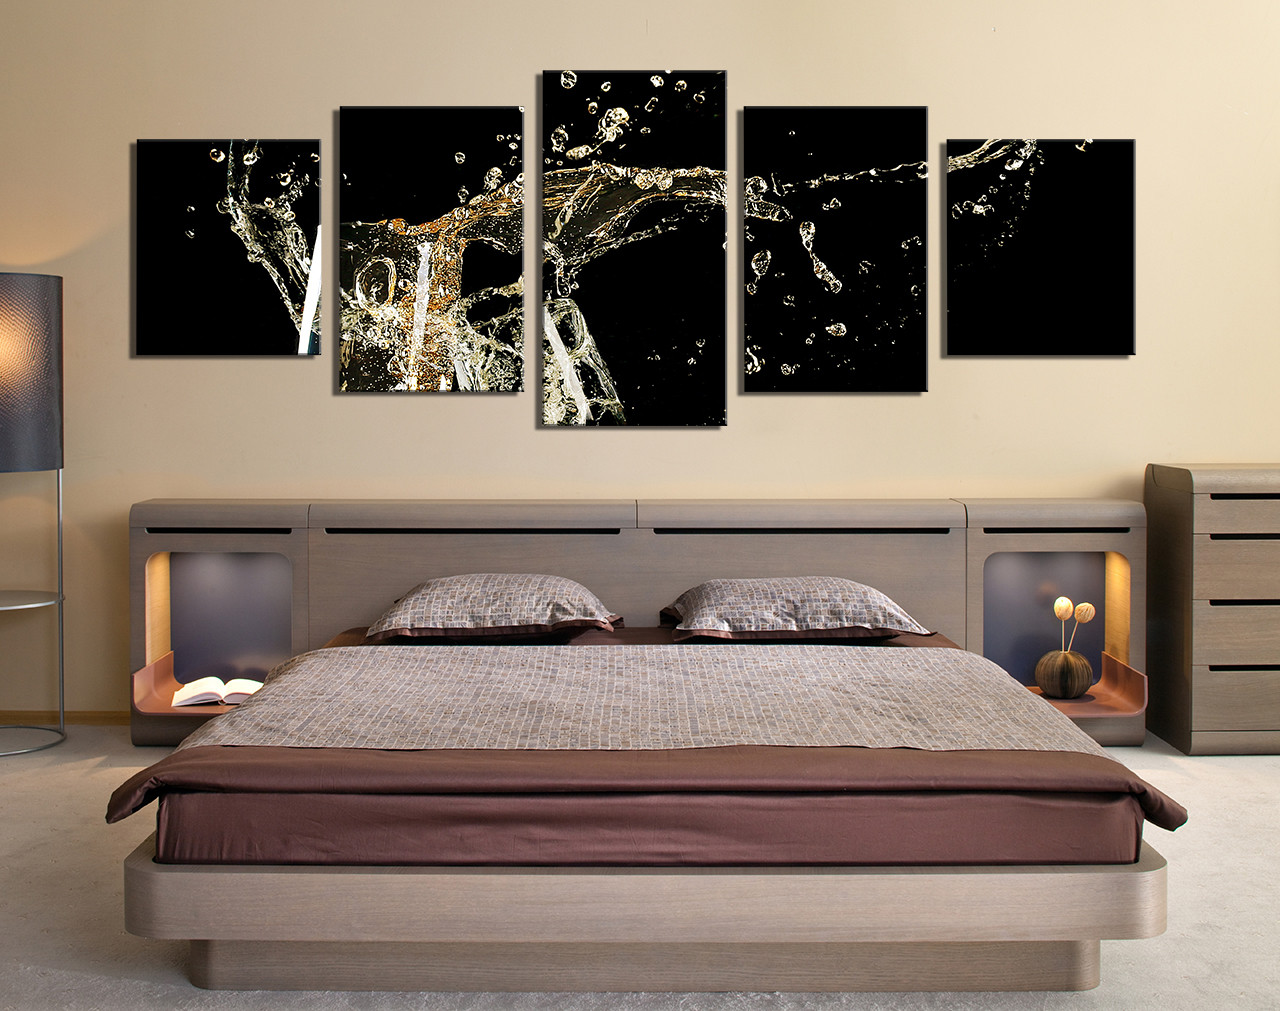 Multi Frame Wall Art 5 piece wall decor, panoramic huge canvas print, champagne multi